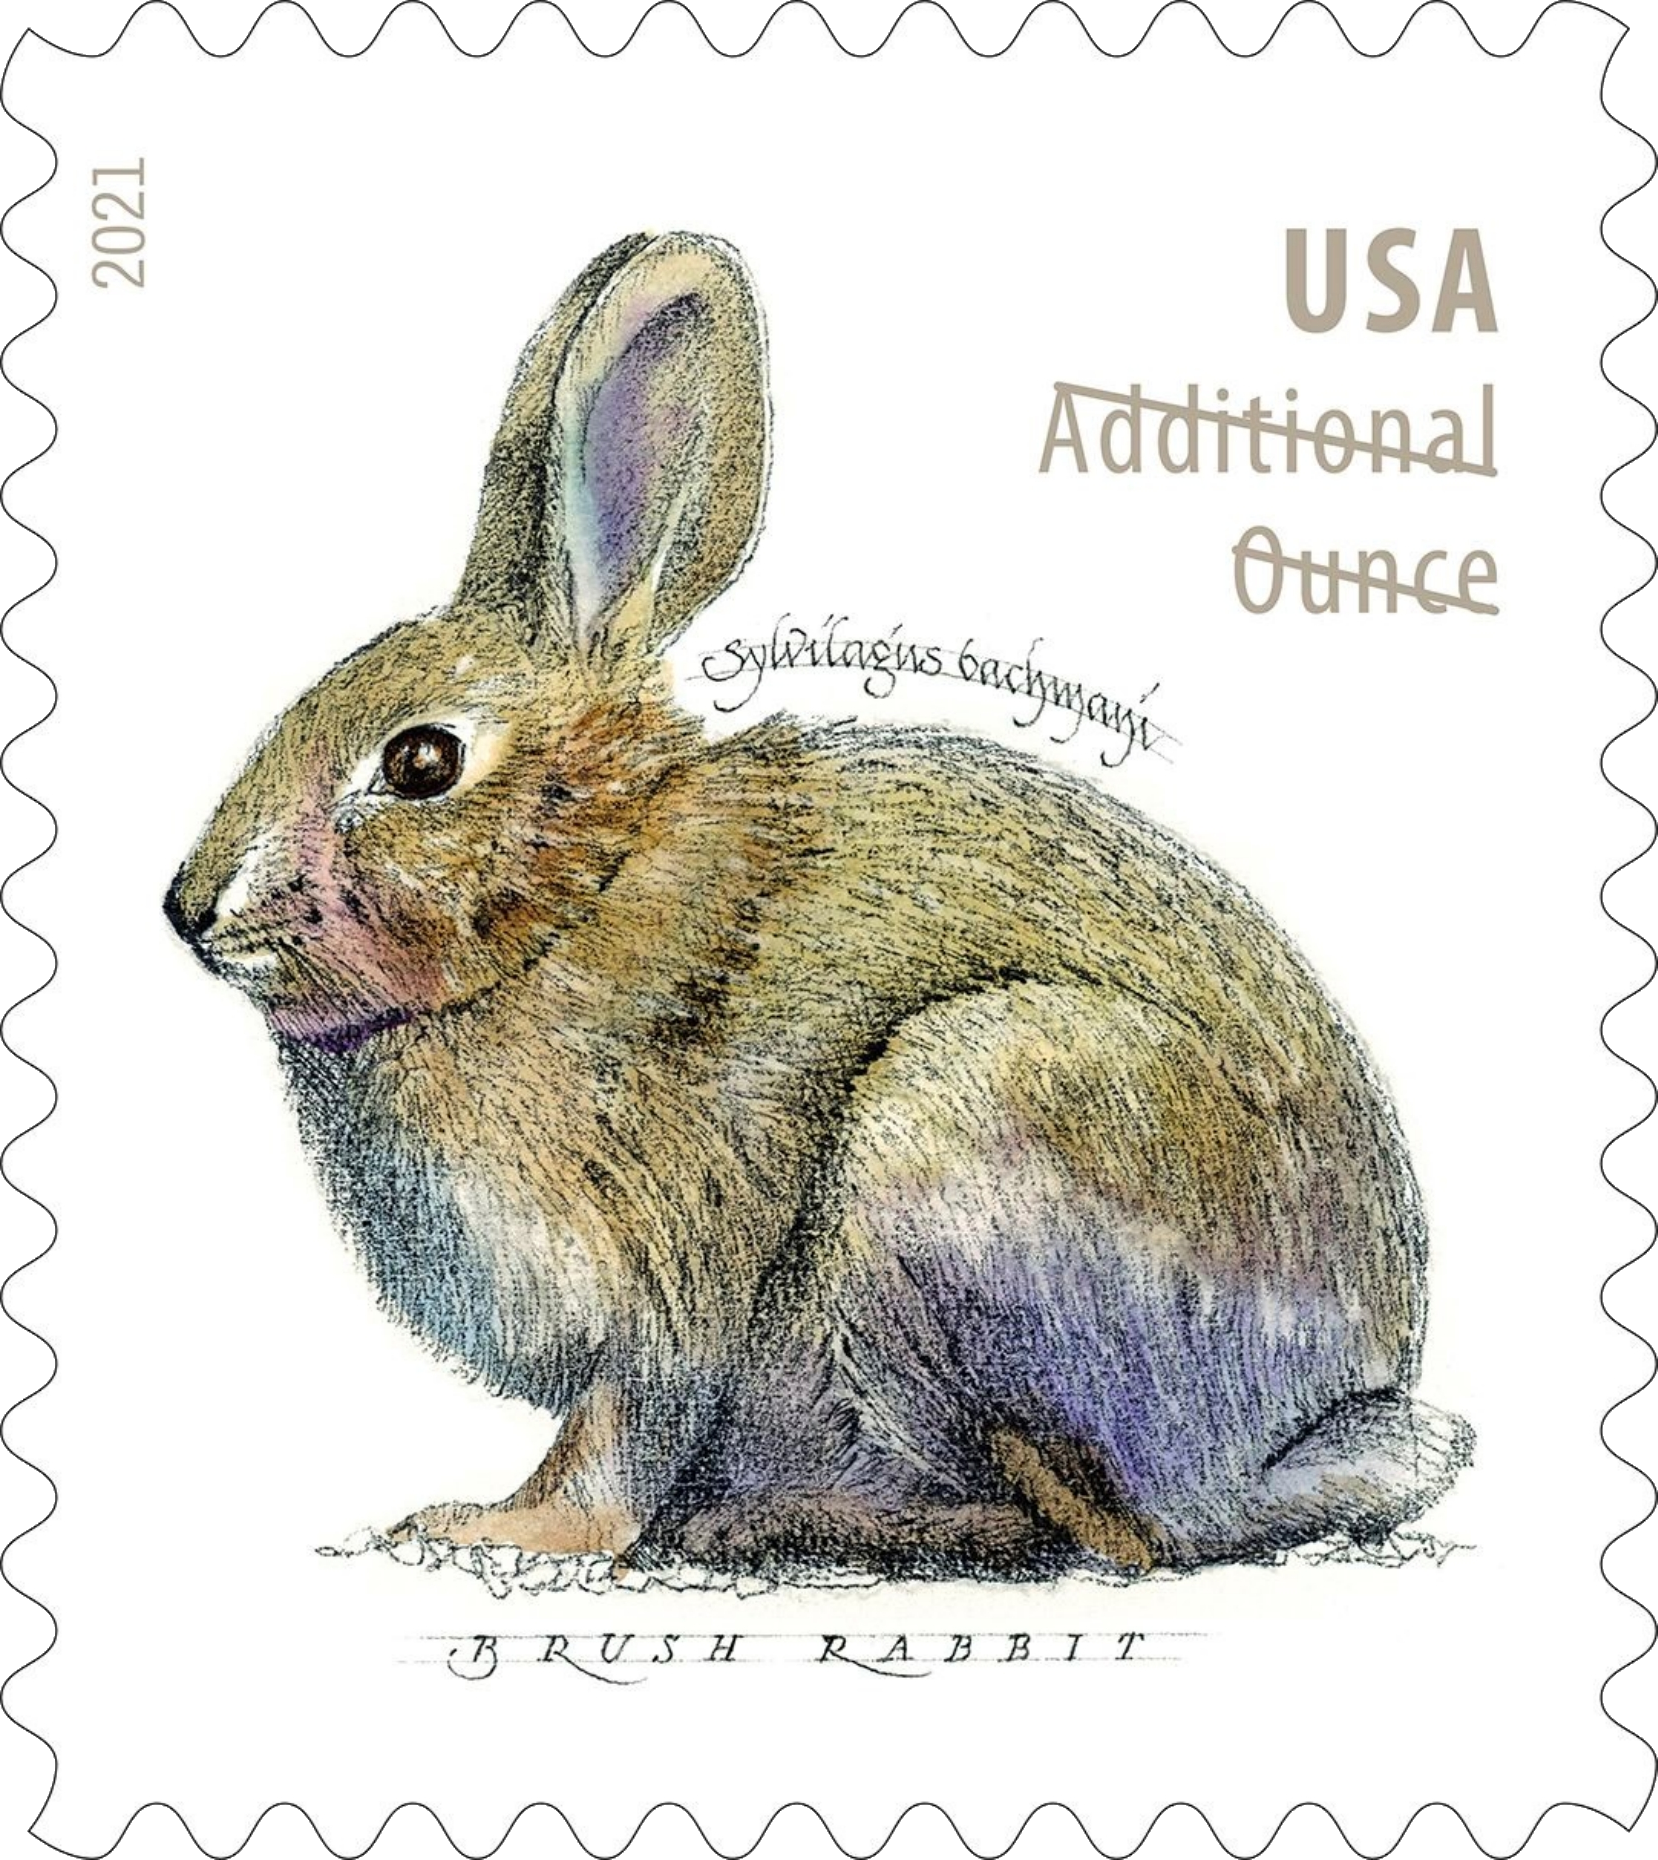 United States: Brush Rabbit, 24 January 2021